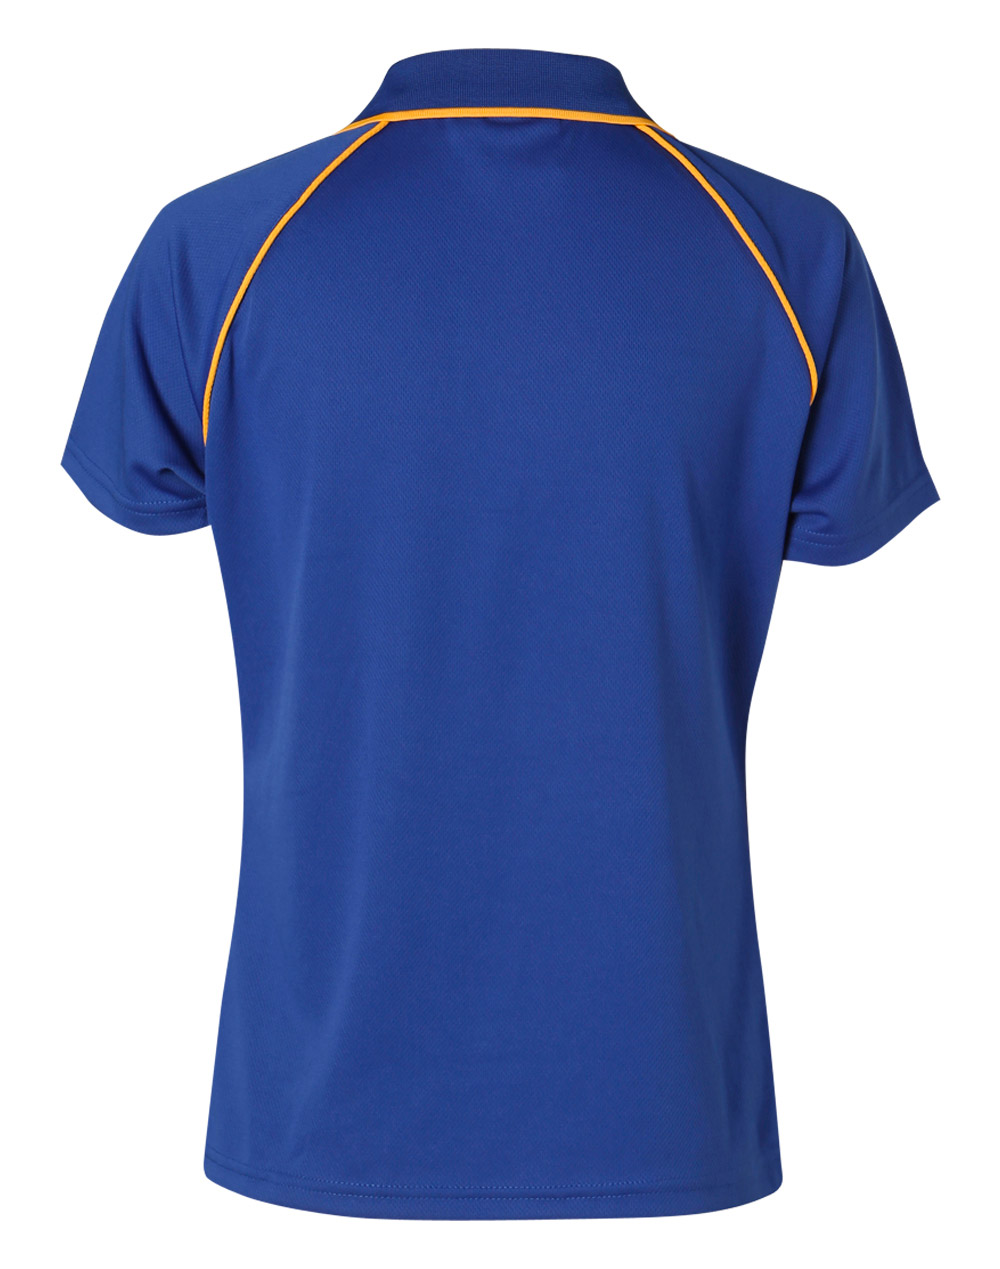 https://s3-ap-southeast-1.amazonaws.com/ws-imgs/POLOSHIRTS/PS19_Royal.Gold_Back.jpg